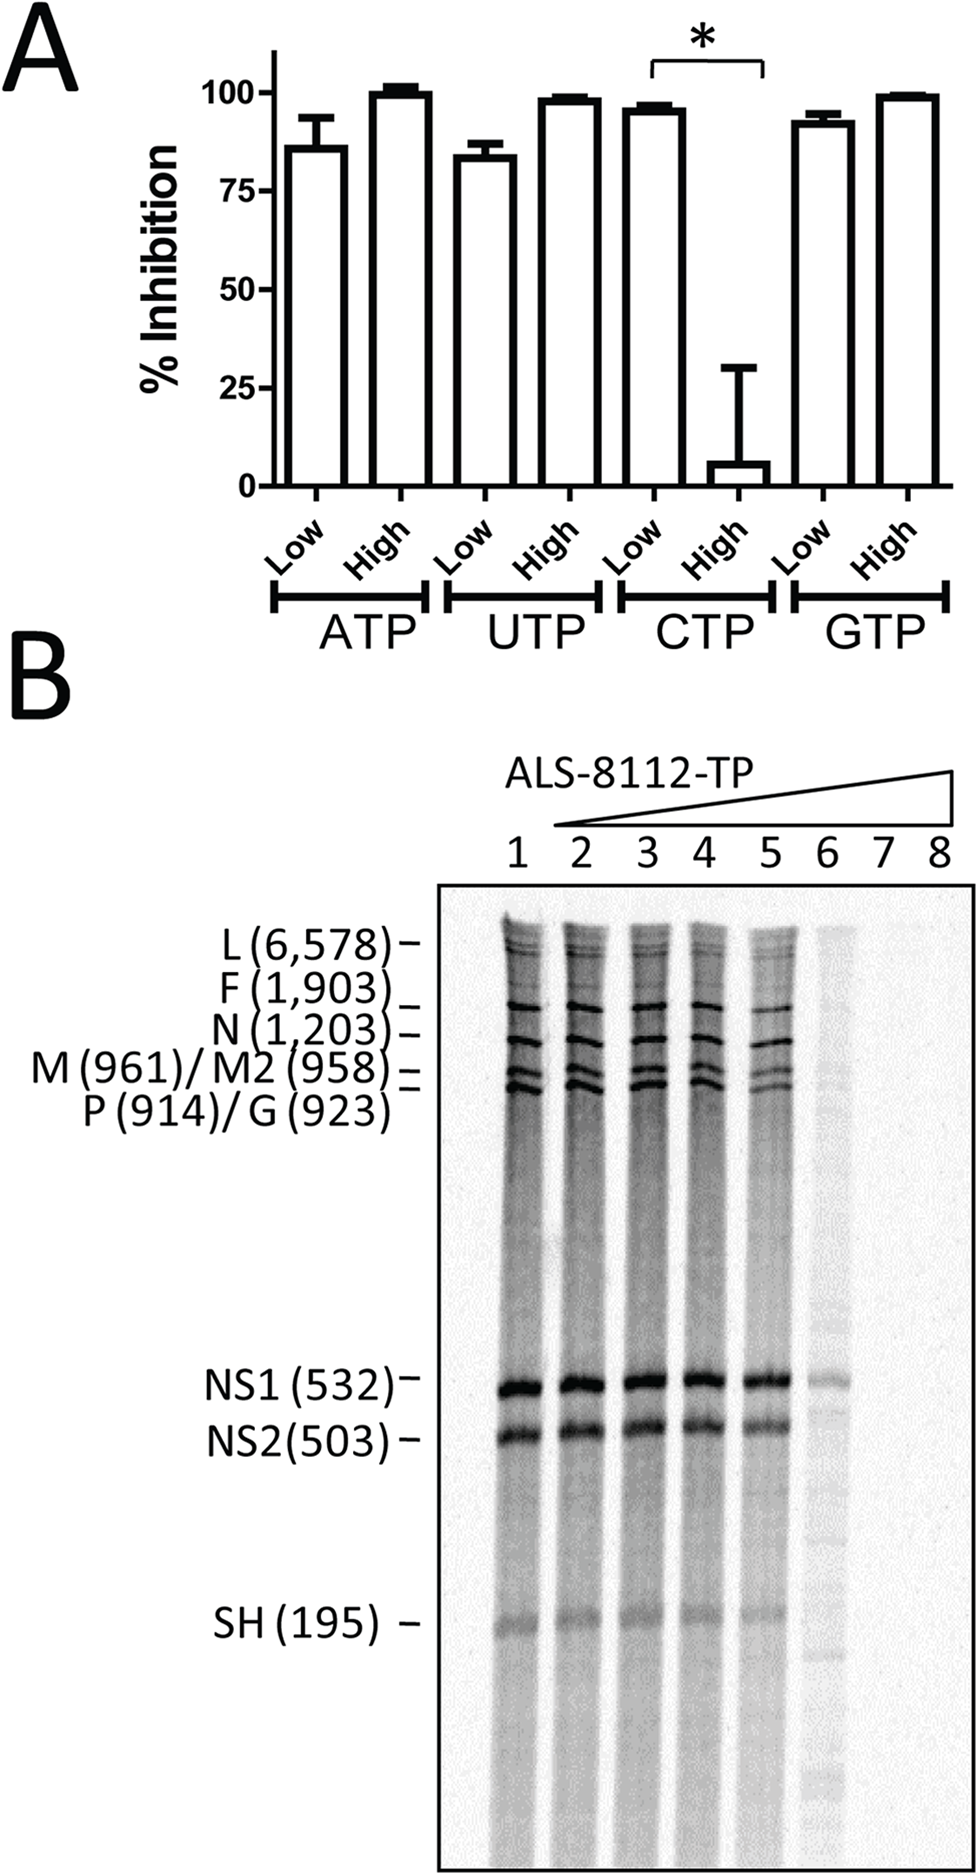 Competitive inhibition of RSV RNP complex by ALS-8112-TP.